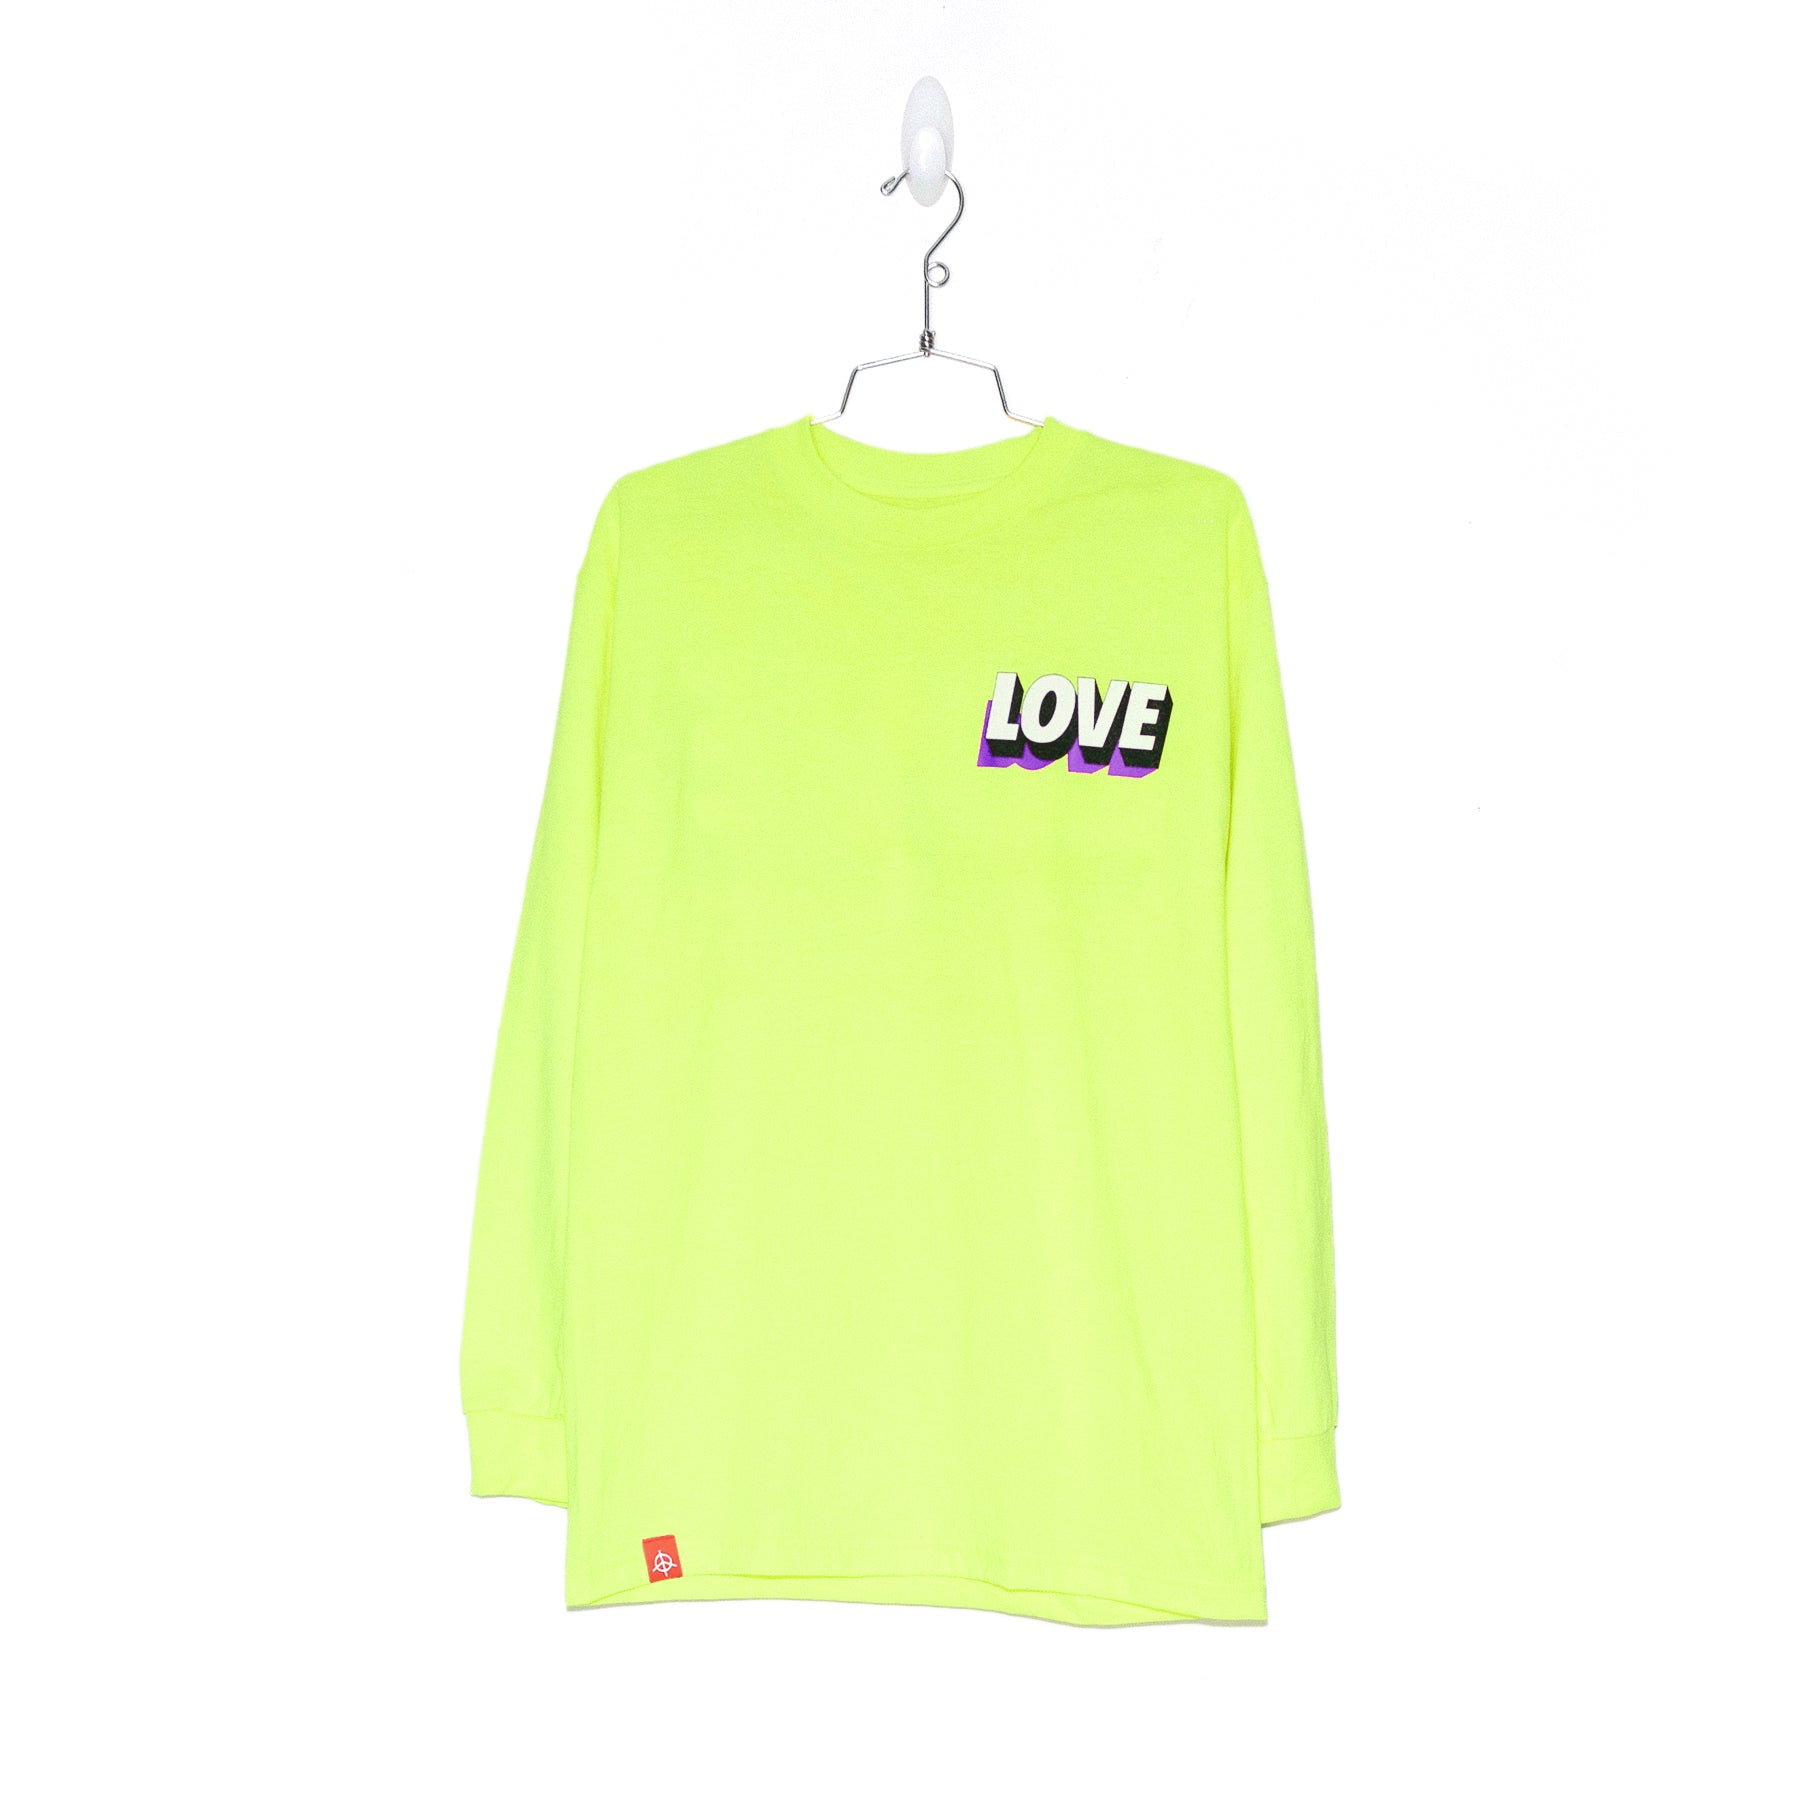 SPREAD LOVE L/S - NEON YELLOW